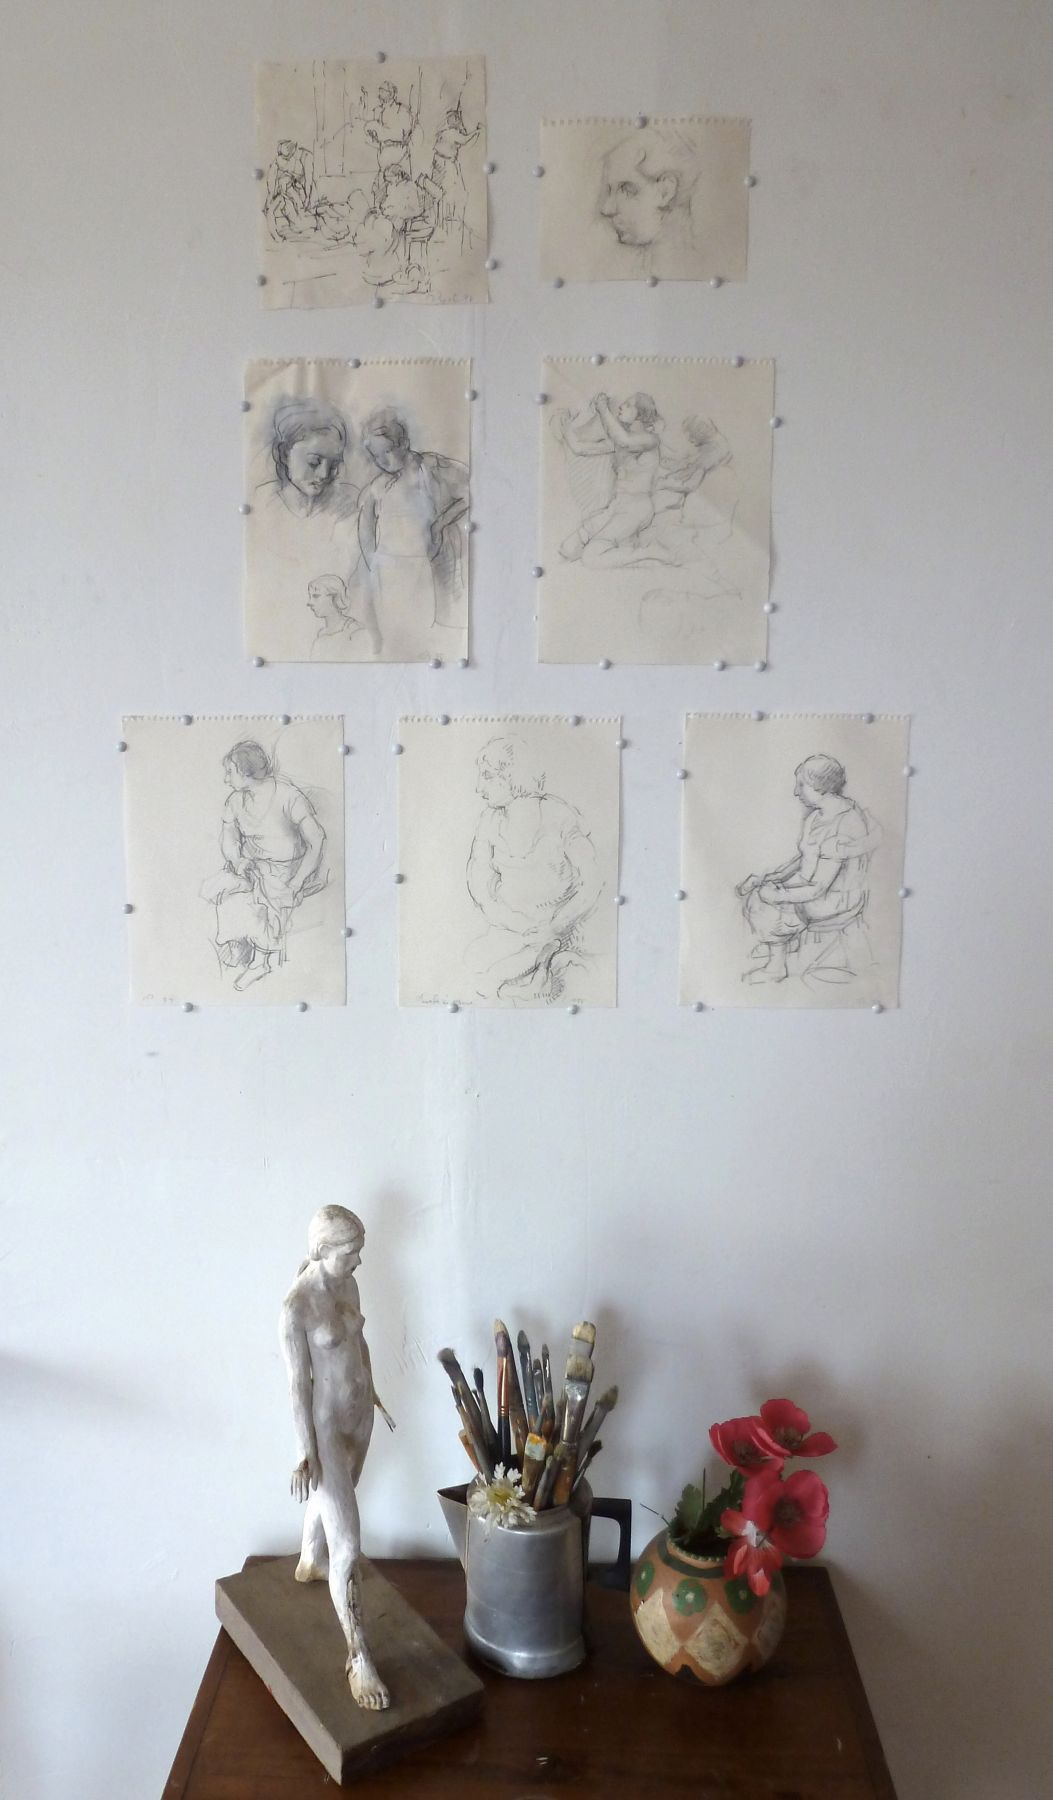 West Wall with Drawings